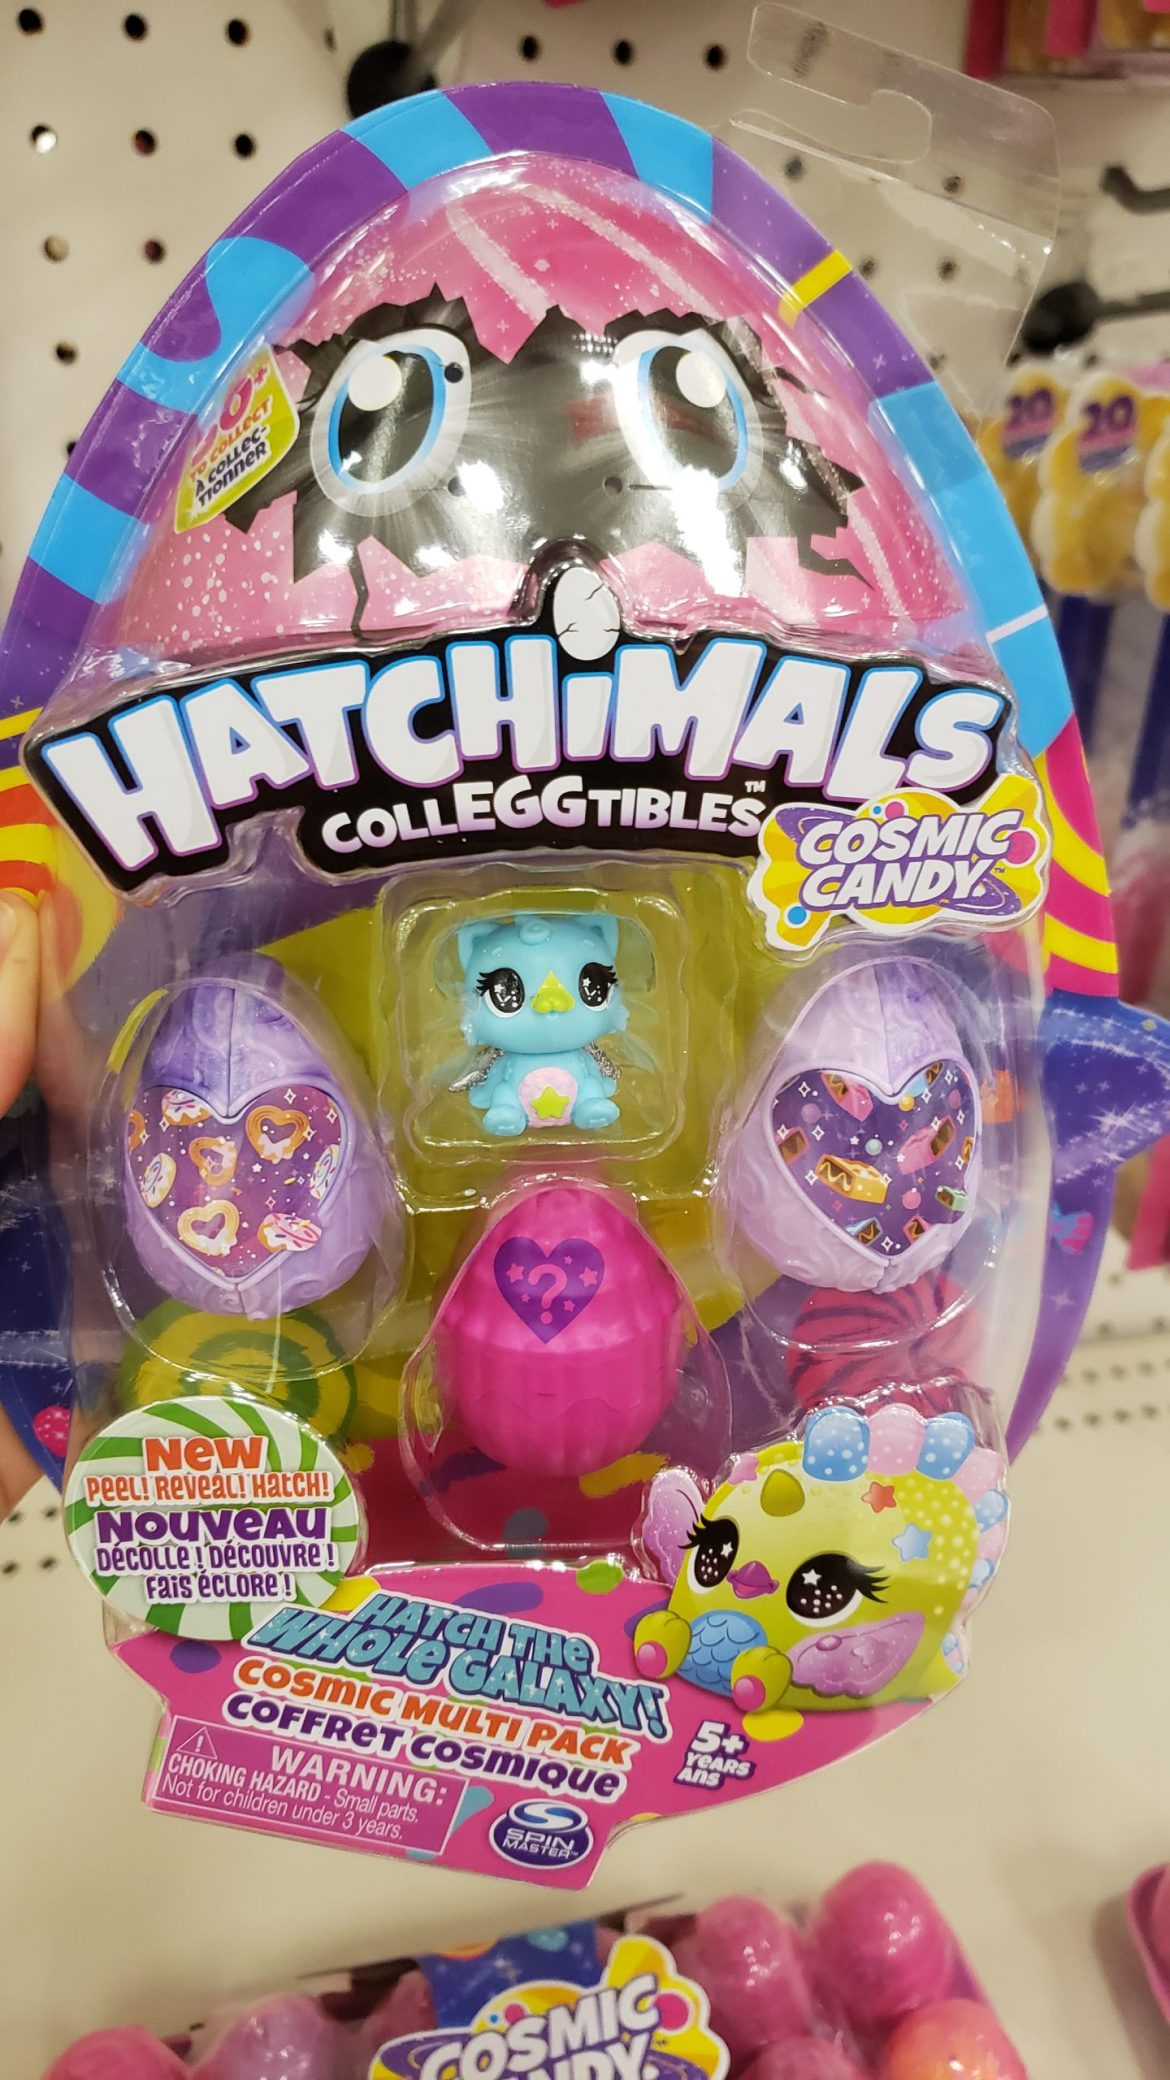 Hatchimals Colleggtibles Cosmic Candy Spotted at Target